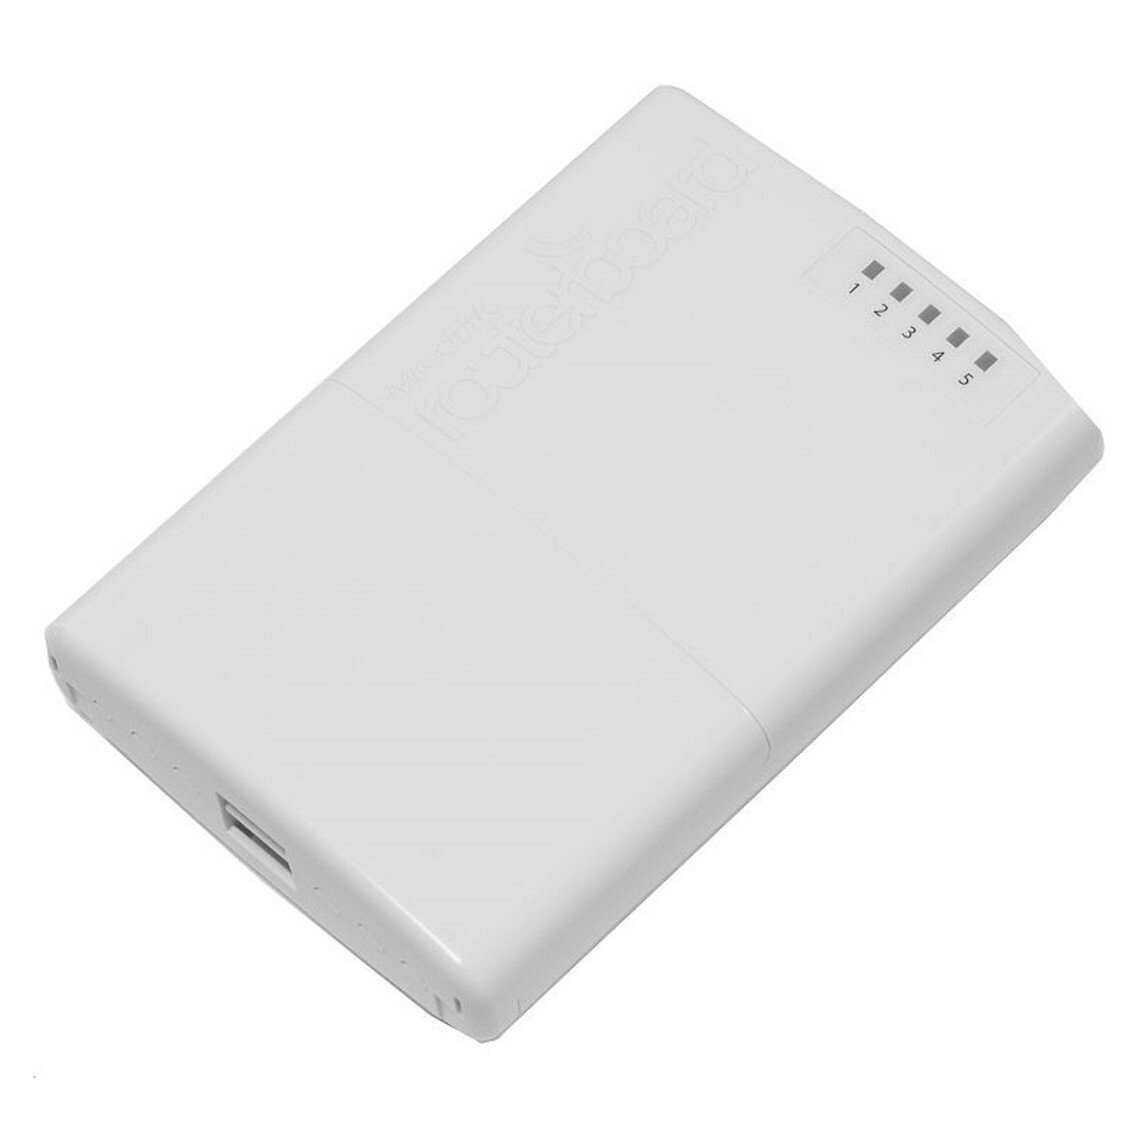 Маршрутизатор MikroTik PowerBOX 5xFE/PoE, RouterOS L4, outdoor case (RB750P-PBR2) фото 1